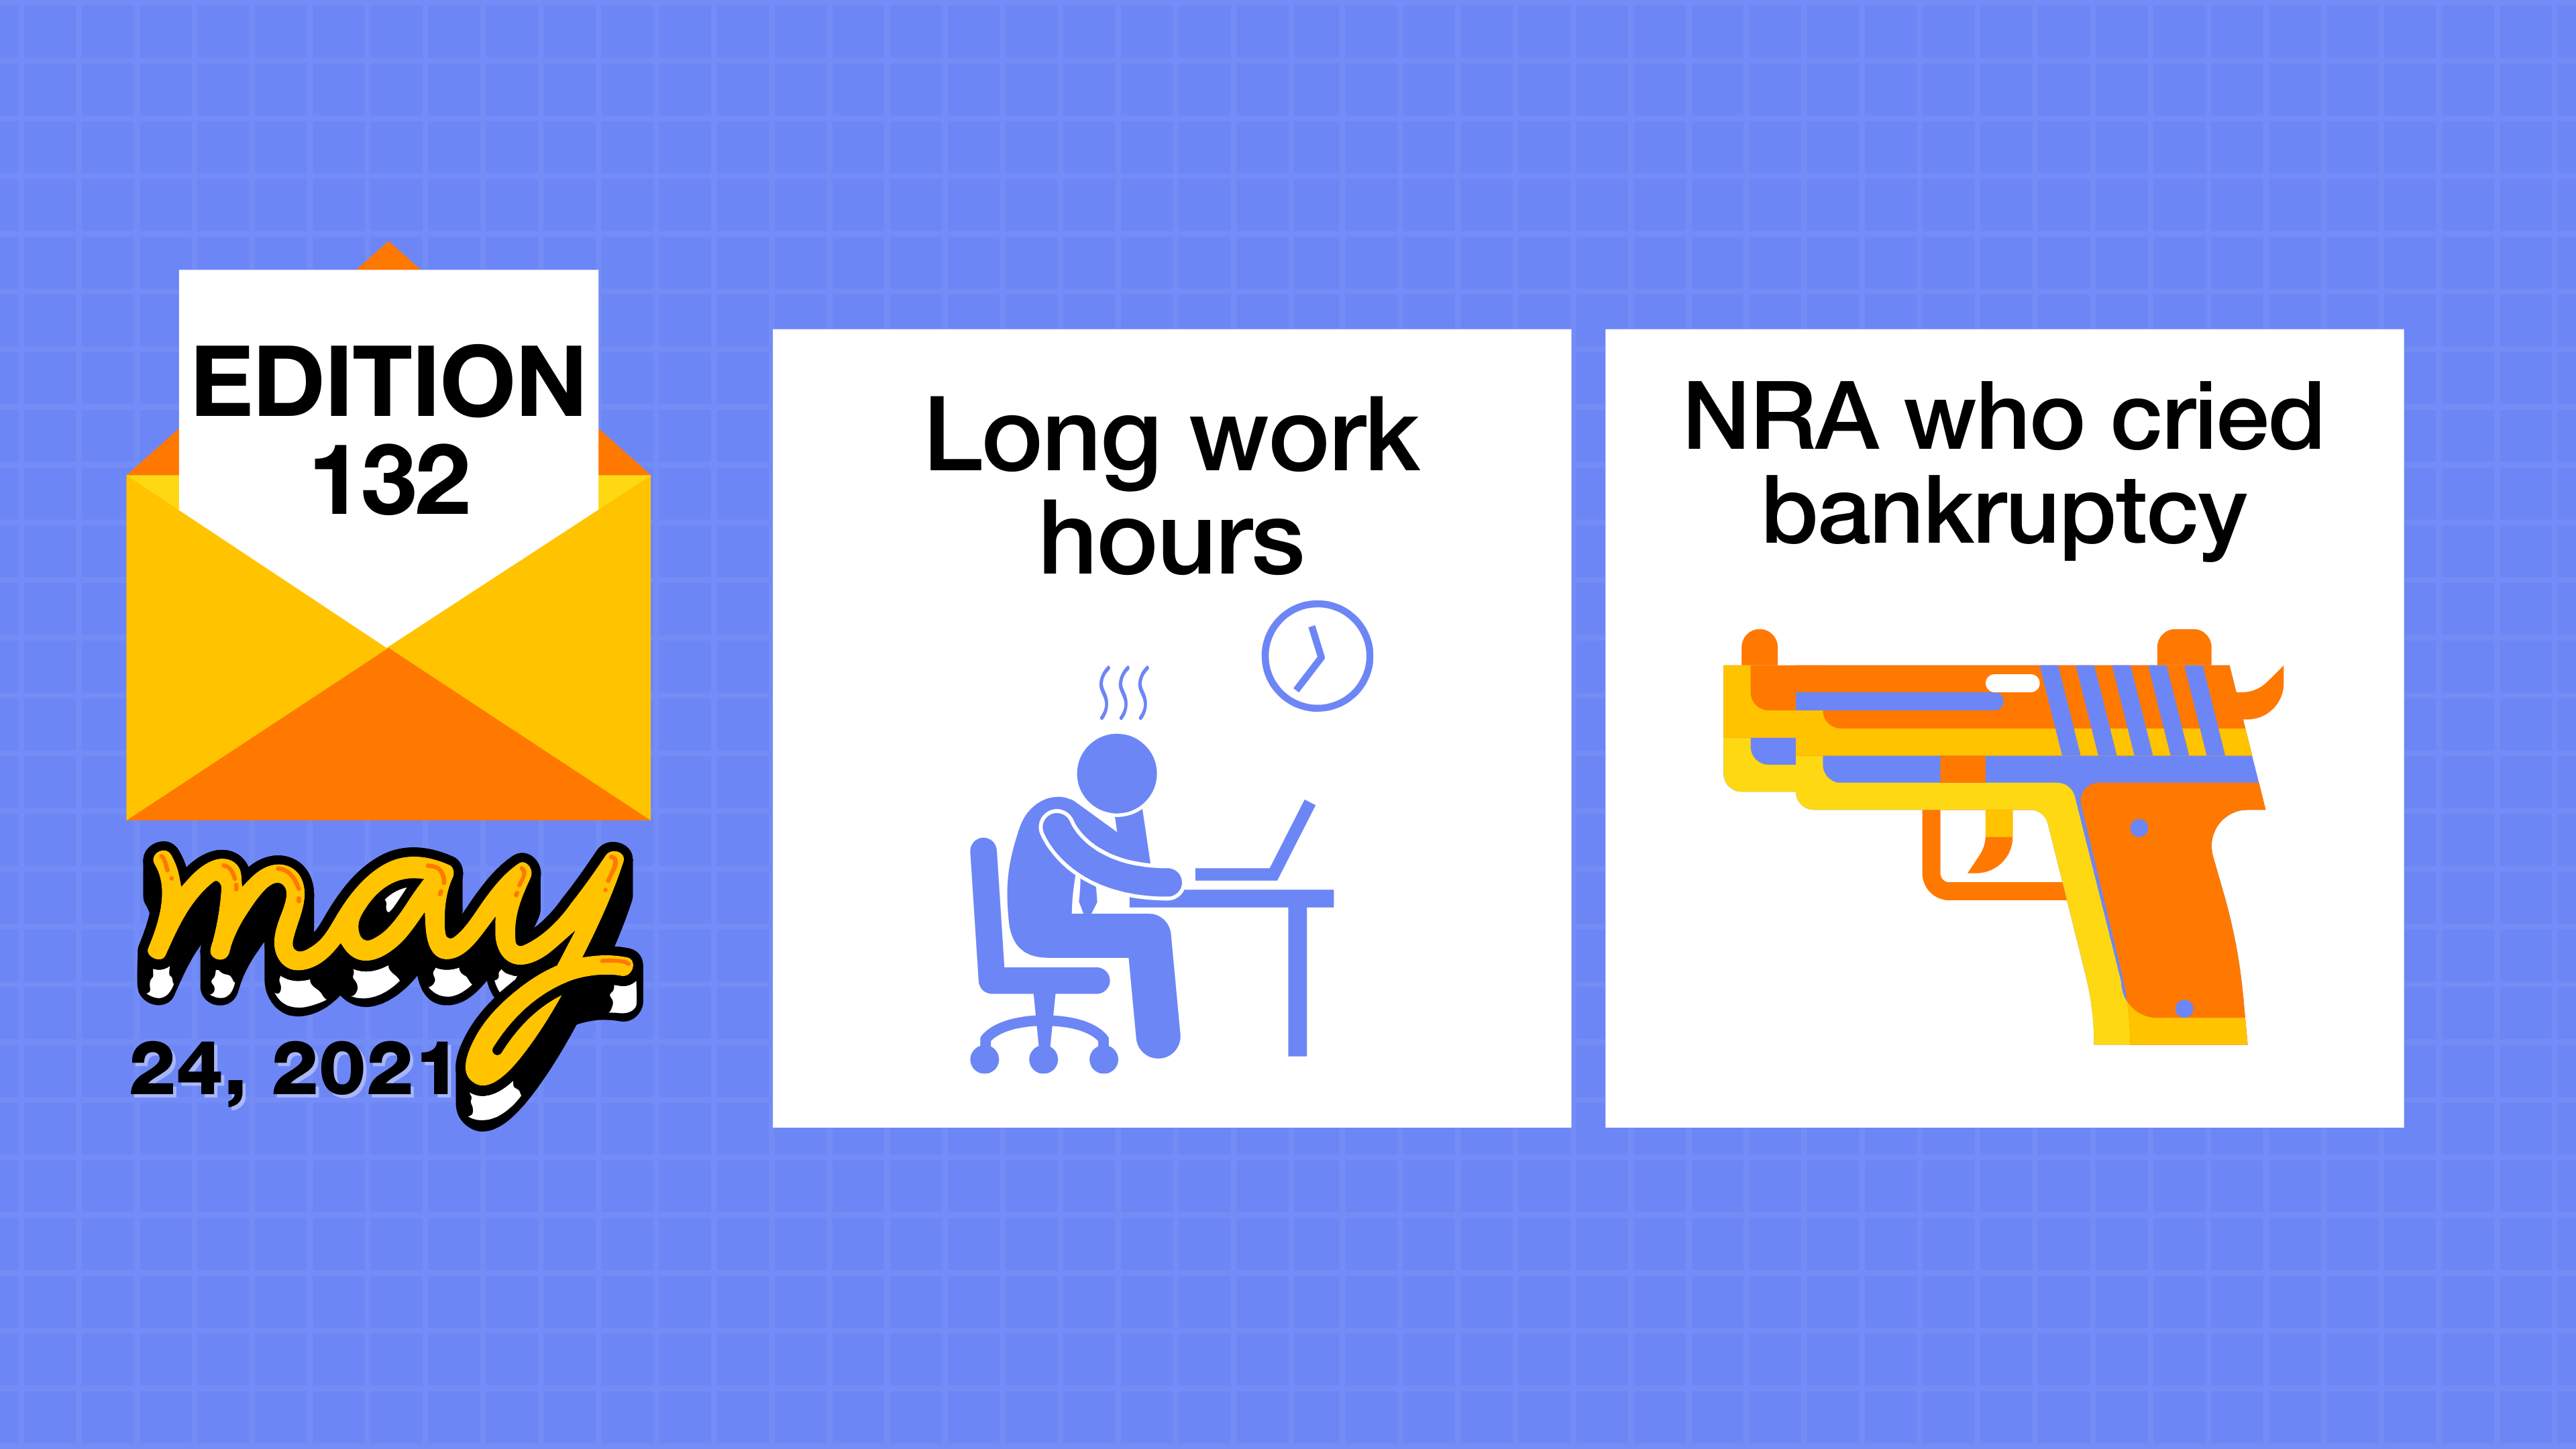 Overworked employees and the NRA who cried bankruptcy